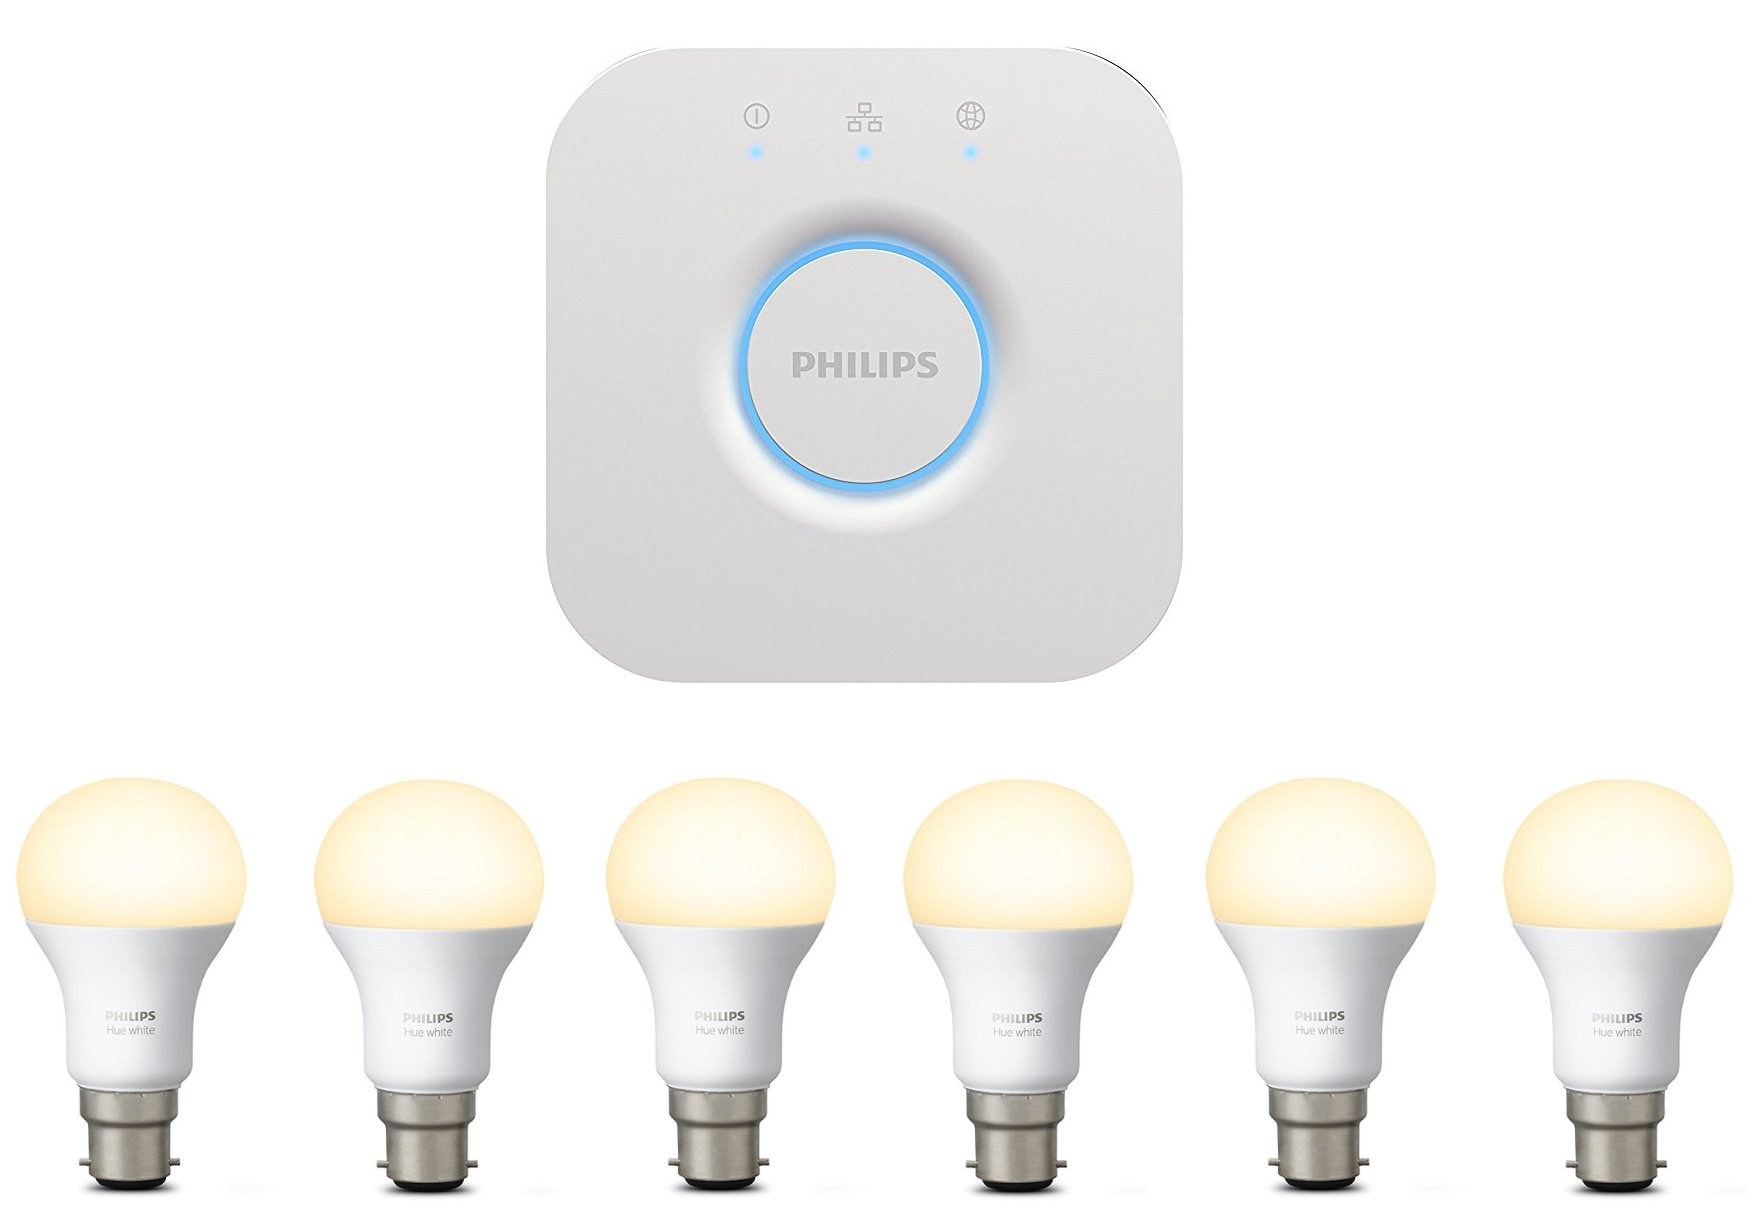 6 x philips hue bulbs philips hue personal wireless lighting home automation bridge 2 0. Black Bedroom Furniture Sets. Home Design Ideas